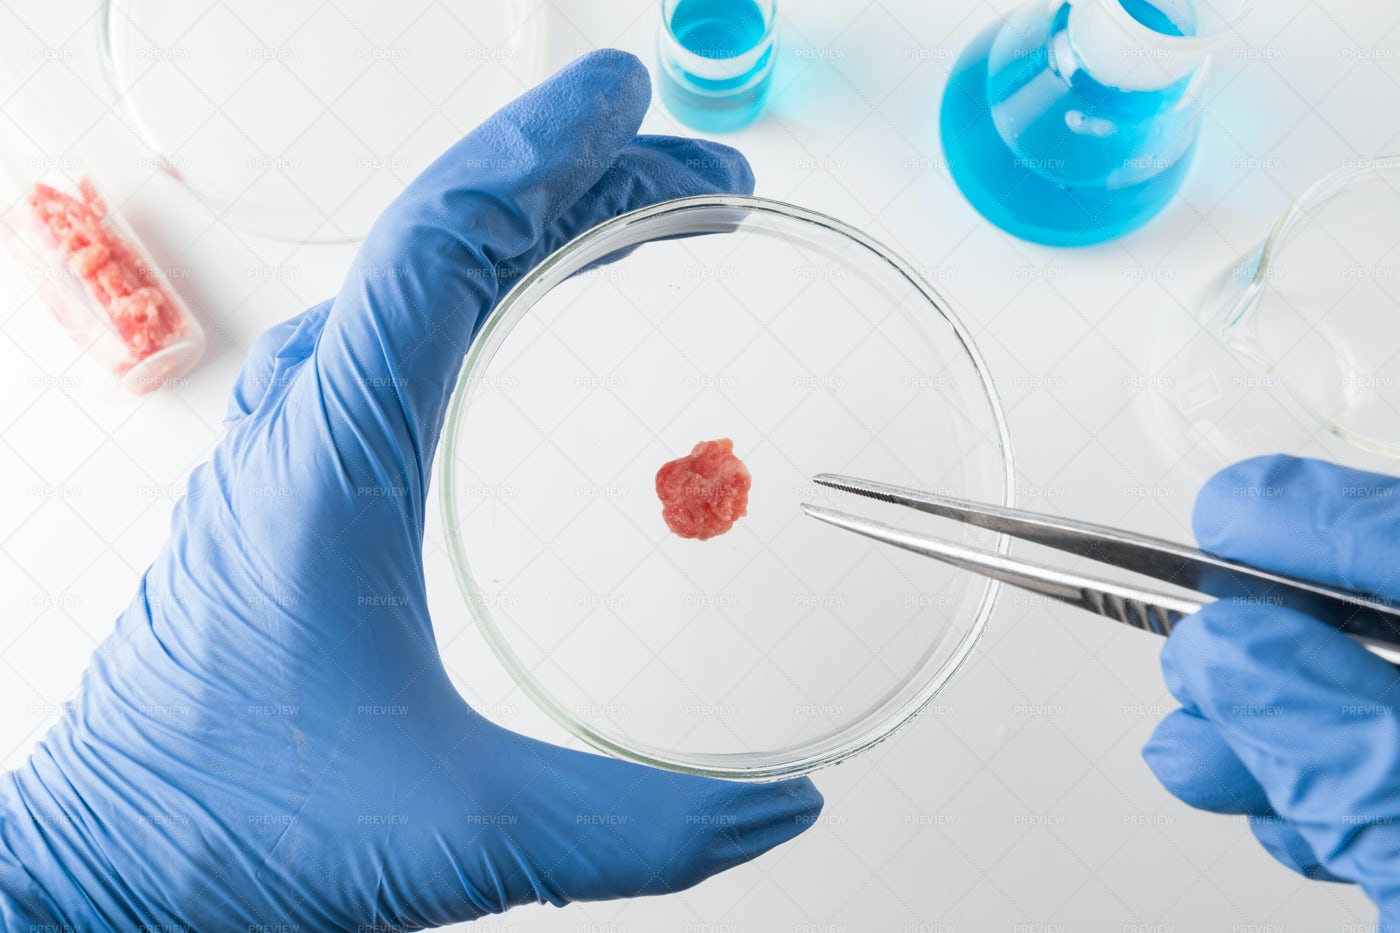 Minced Meat In Petri Dish: Stock Photos